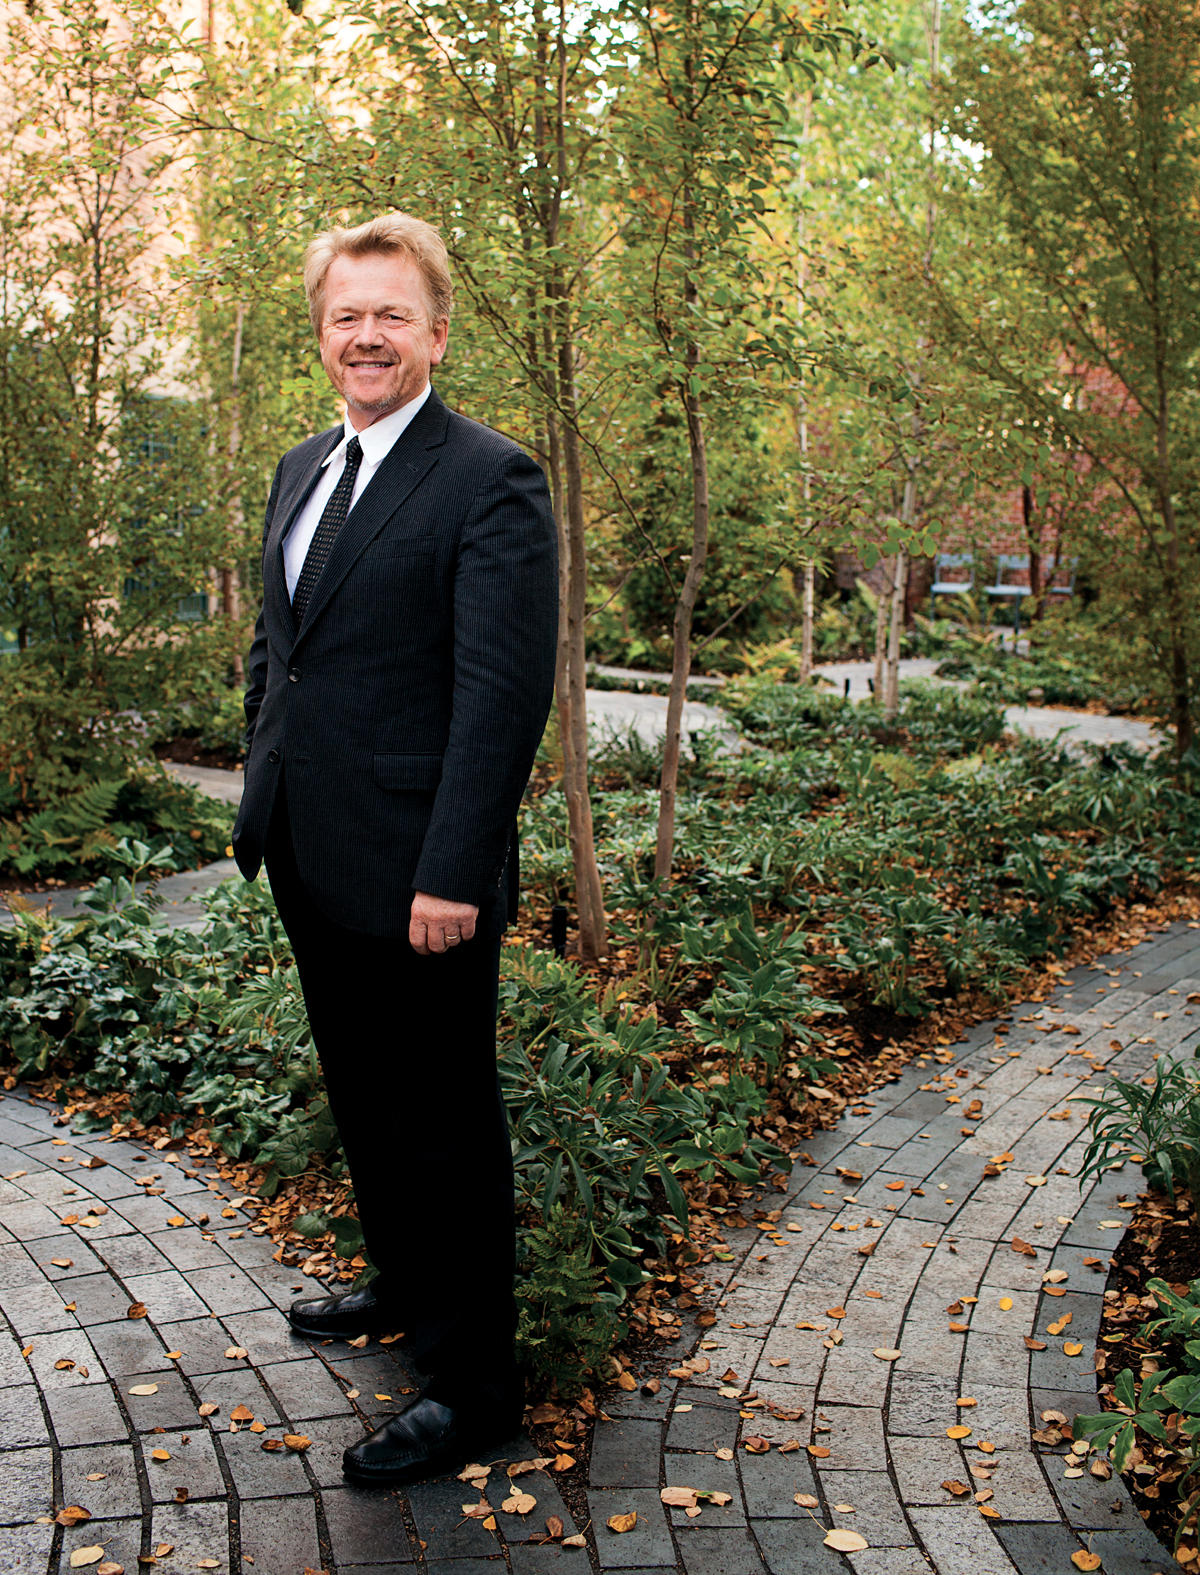 michael-van-valkenburgh-landscape-architect